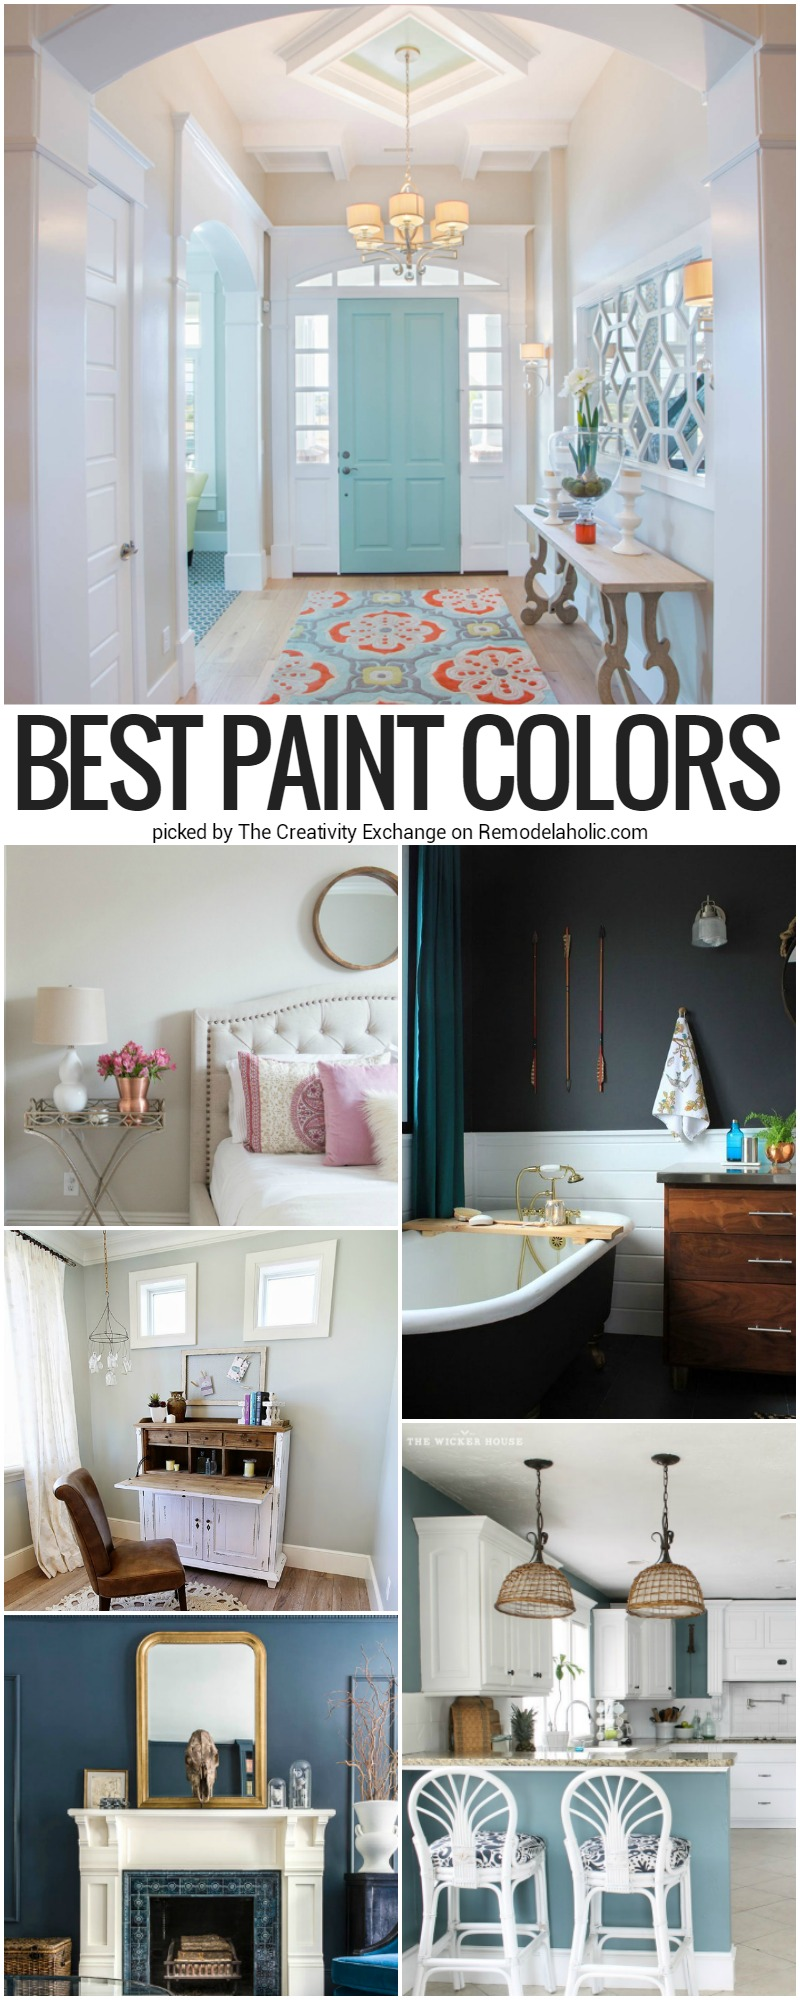 paint colors for low light roomsRemodelaholic  Best Paint Colors and Tips from 2016